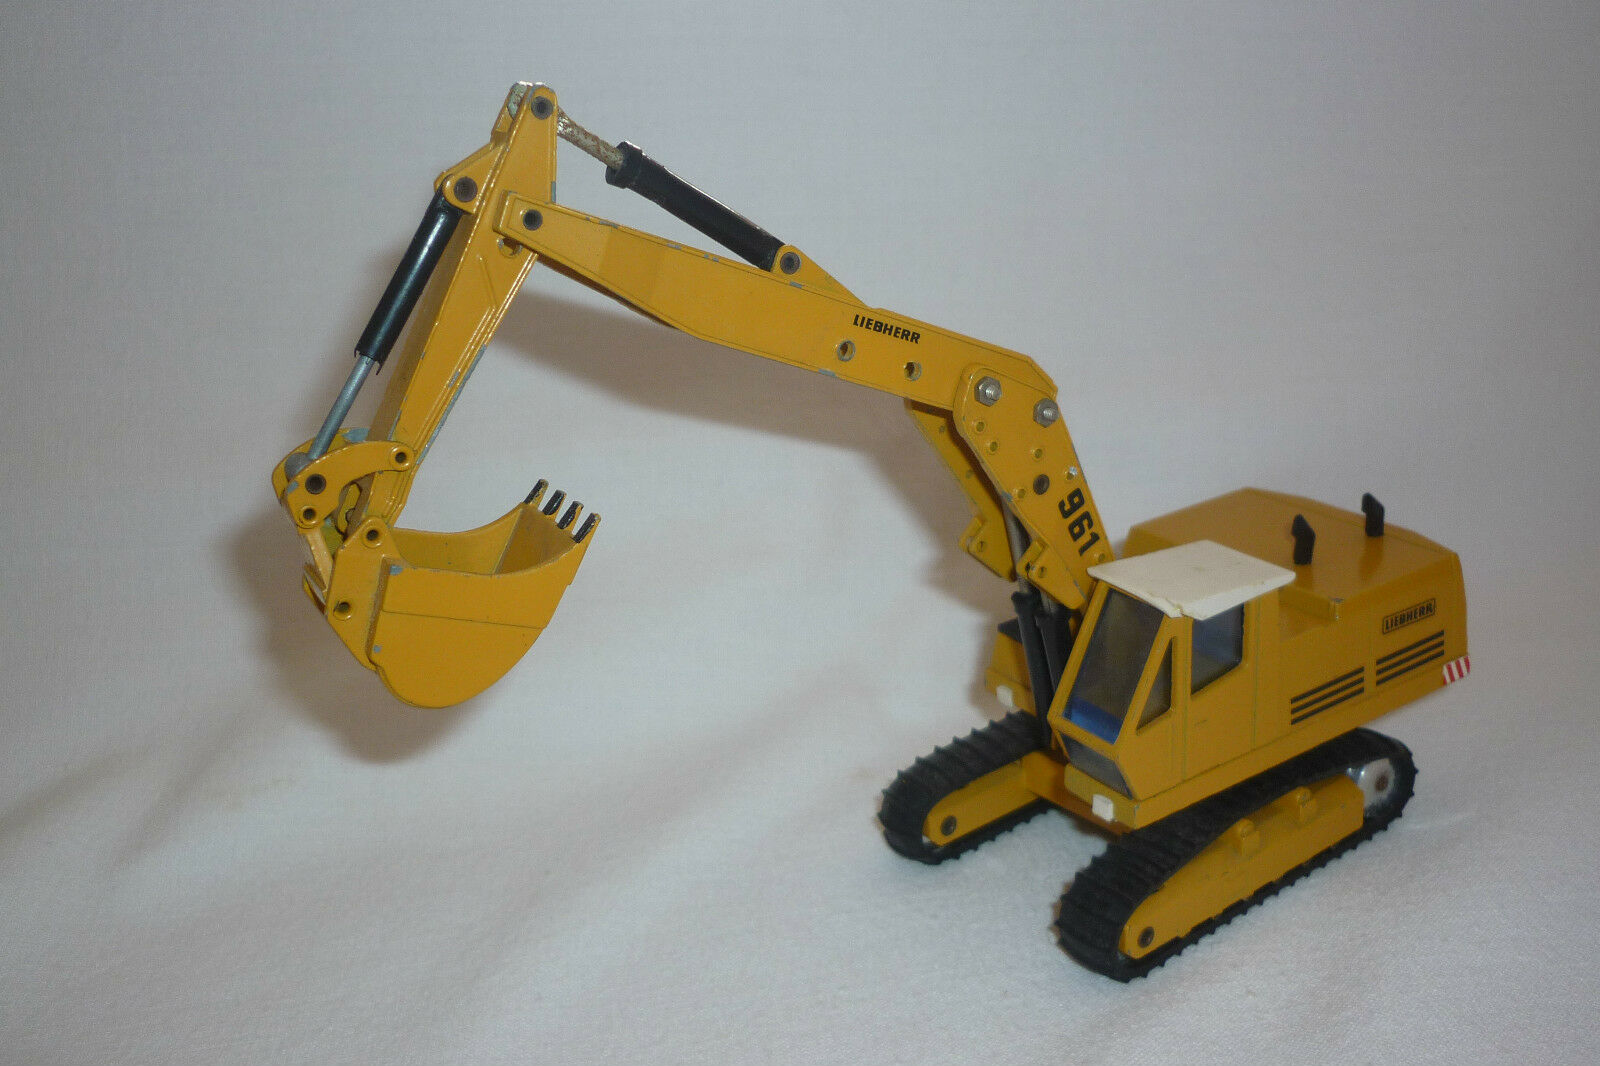 Gescha - Metal Model - Liebherr 961 - Backhoe Loader - 1 50